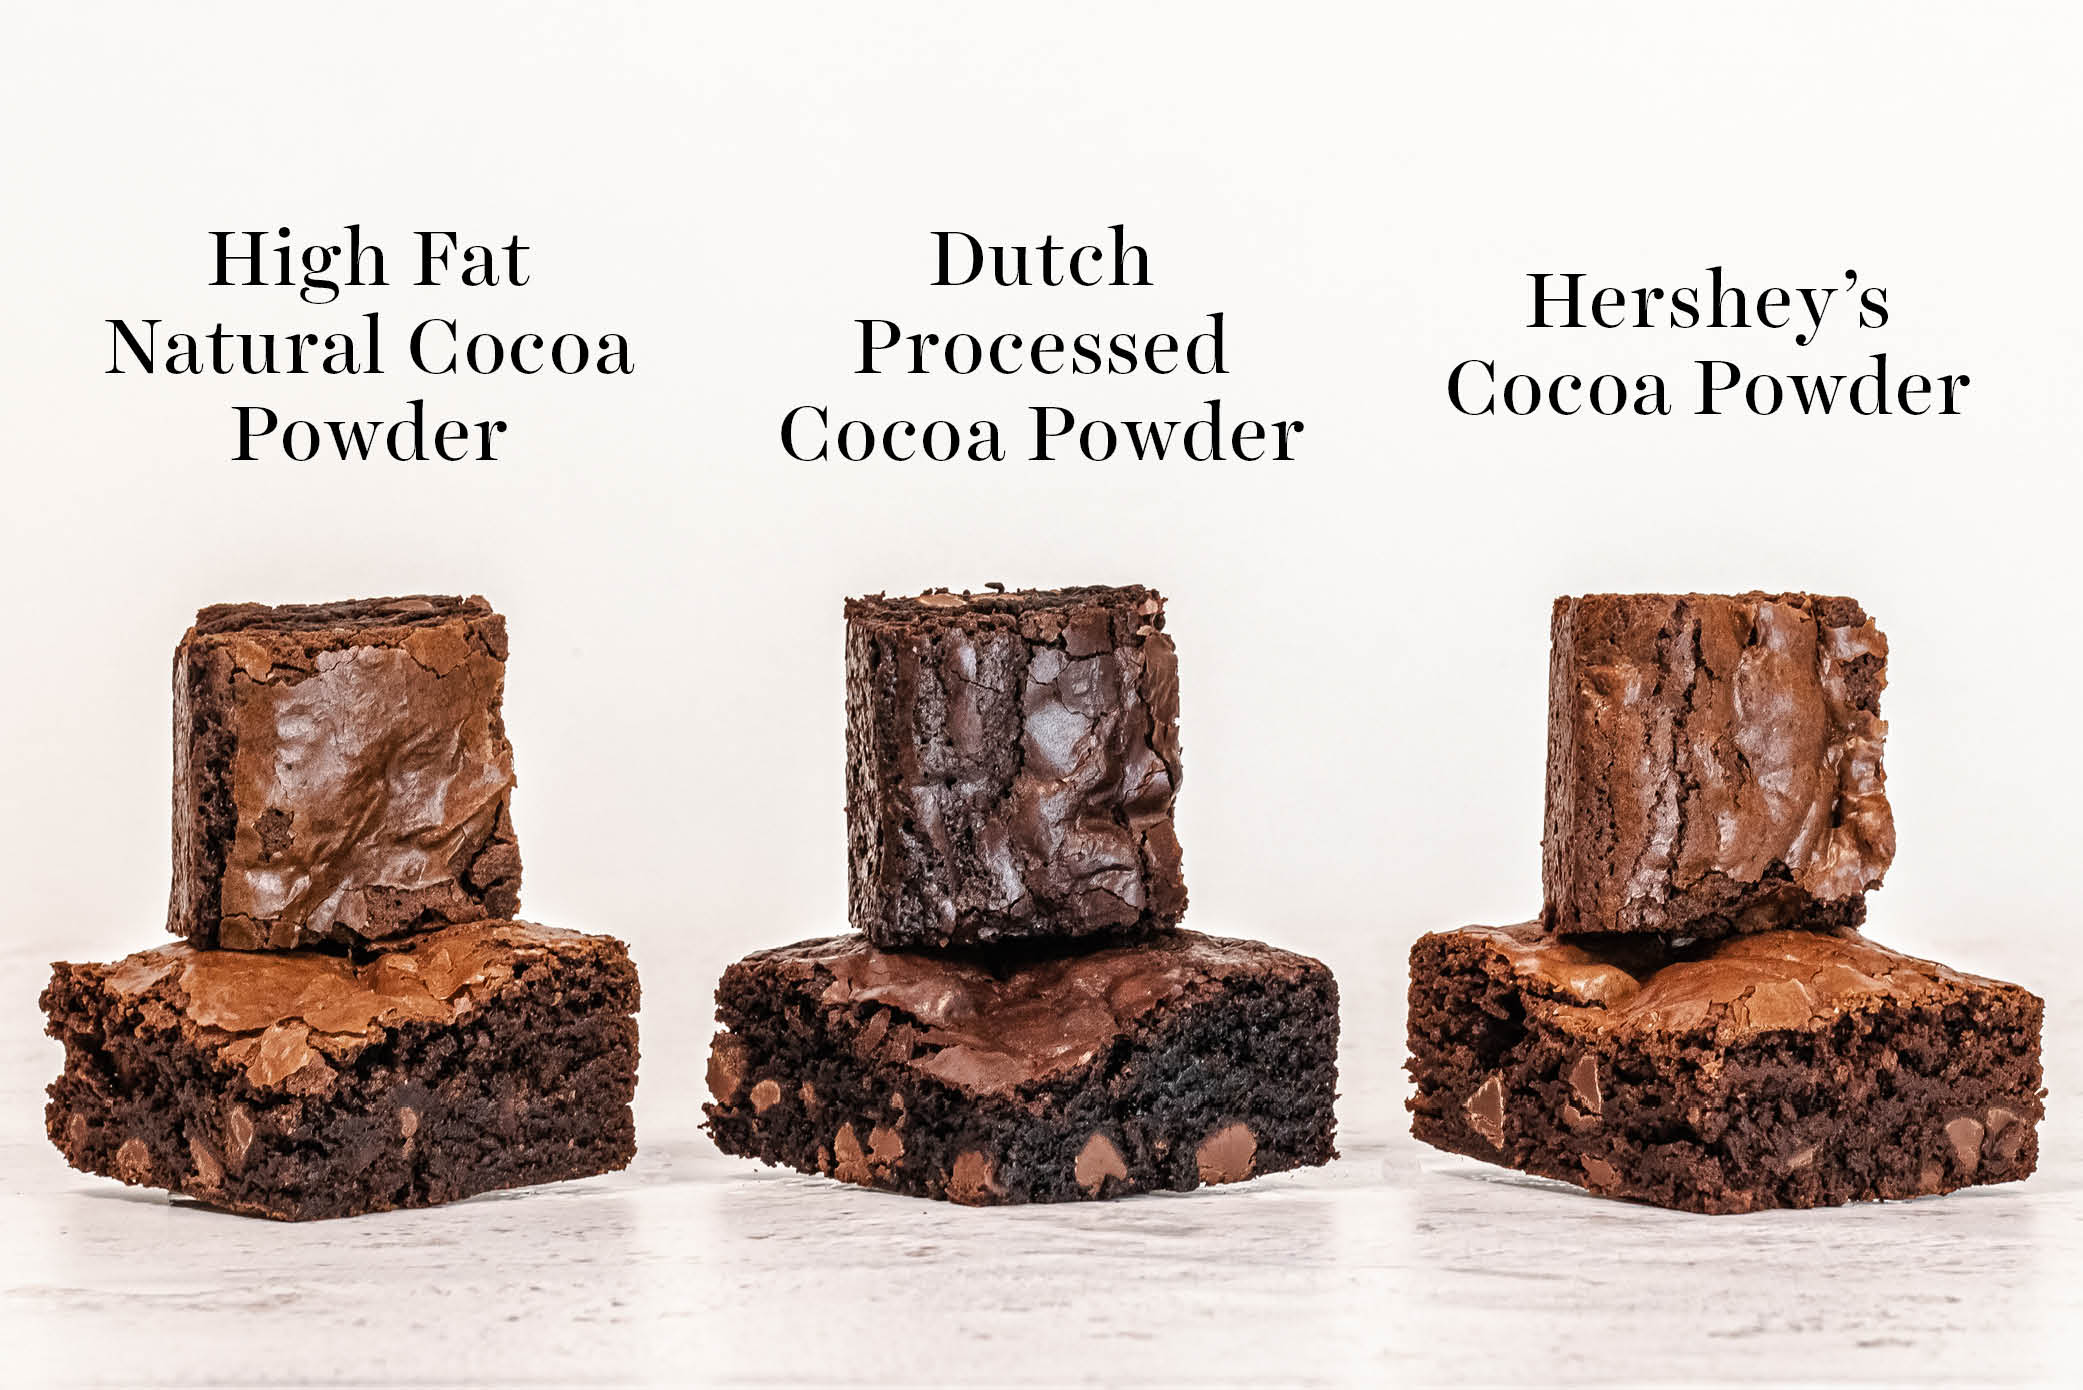 brownie comparison of brownies baked with different types of cocoa powder